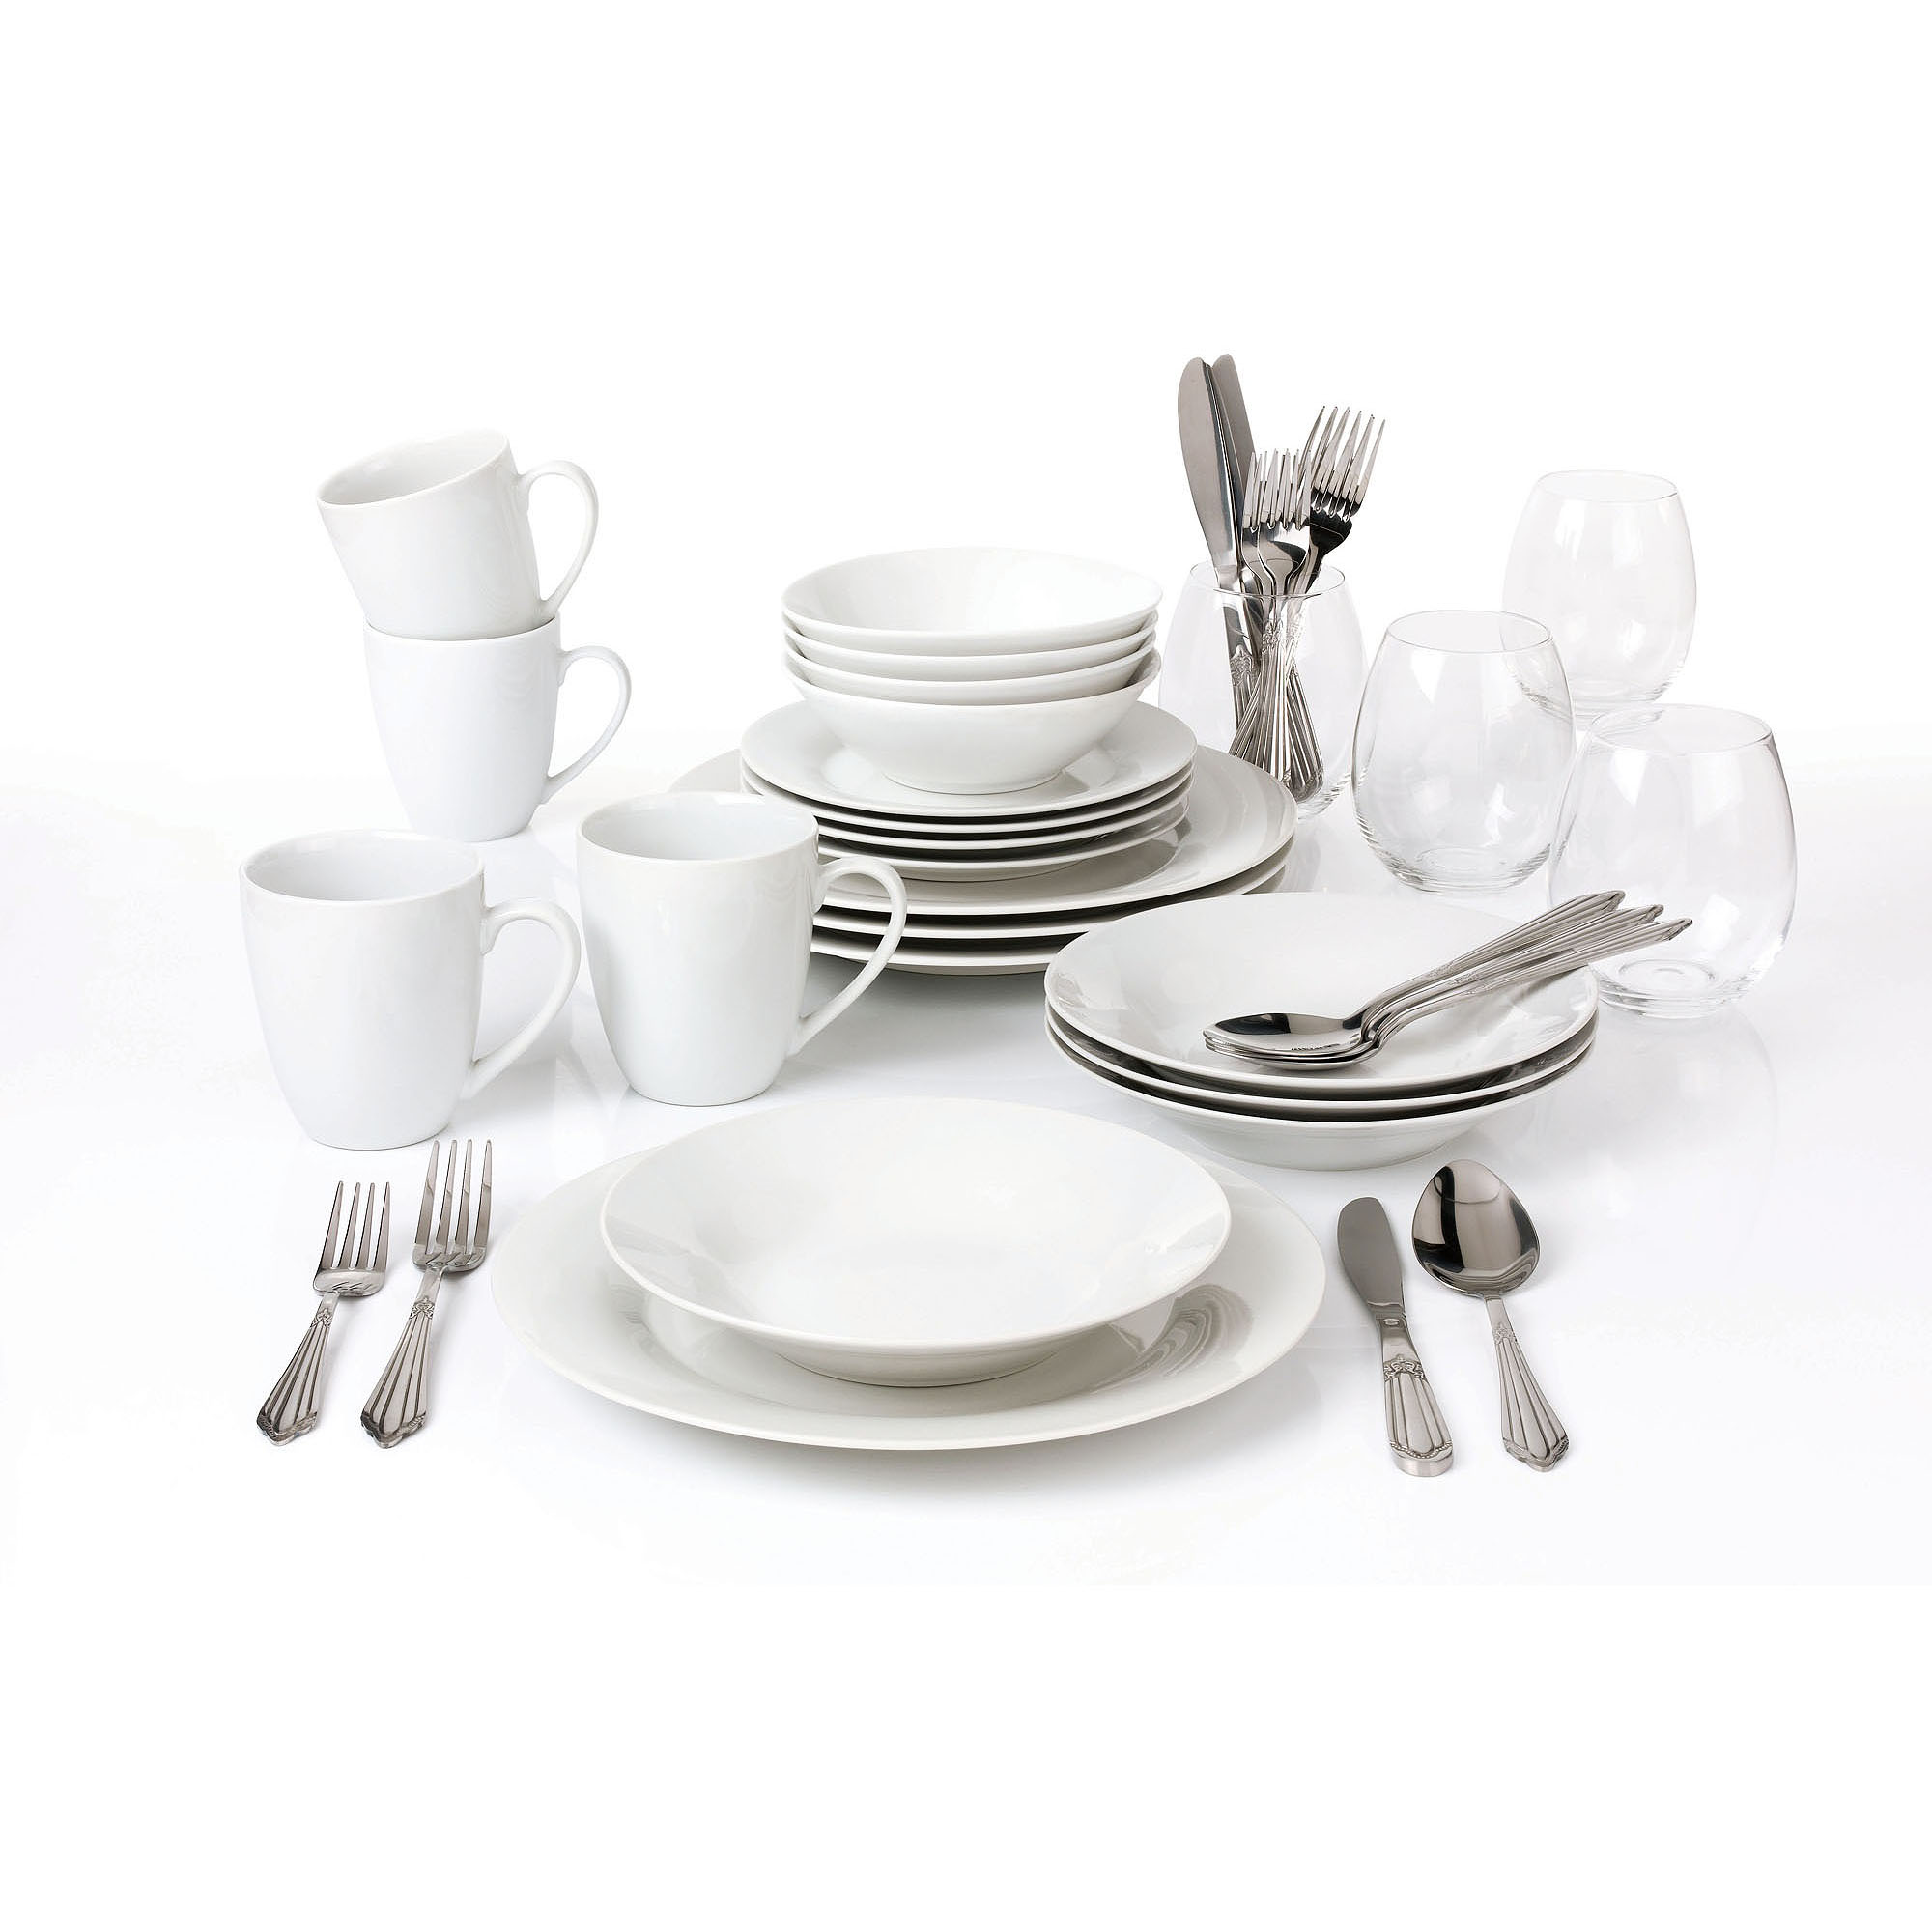 10 Strawberry Street 40-Piece Round Dinnerware Set with Wine Glasses, White by 10 Strawberry Street